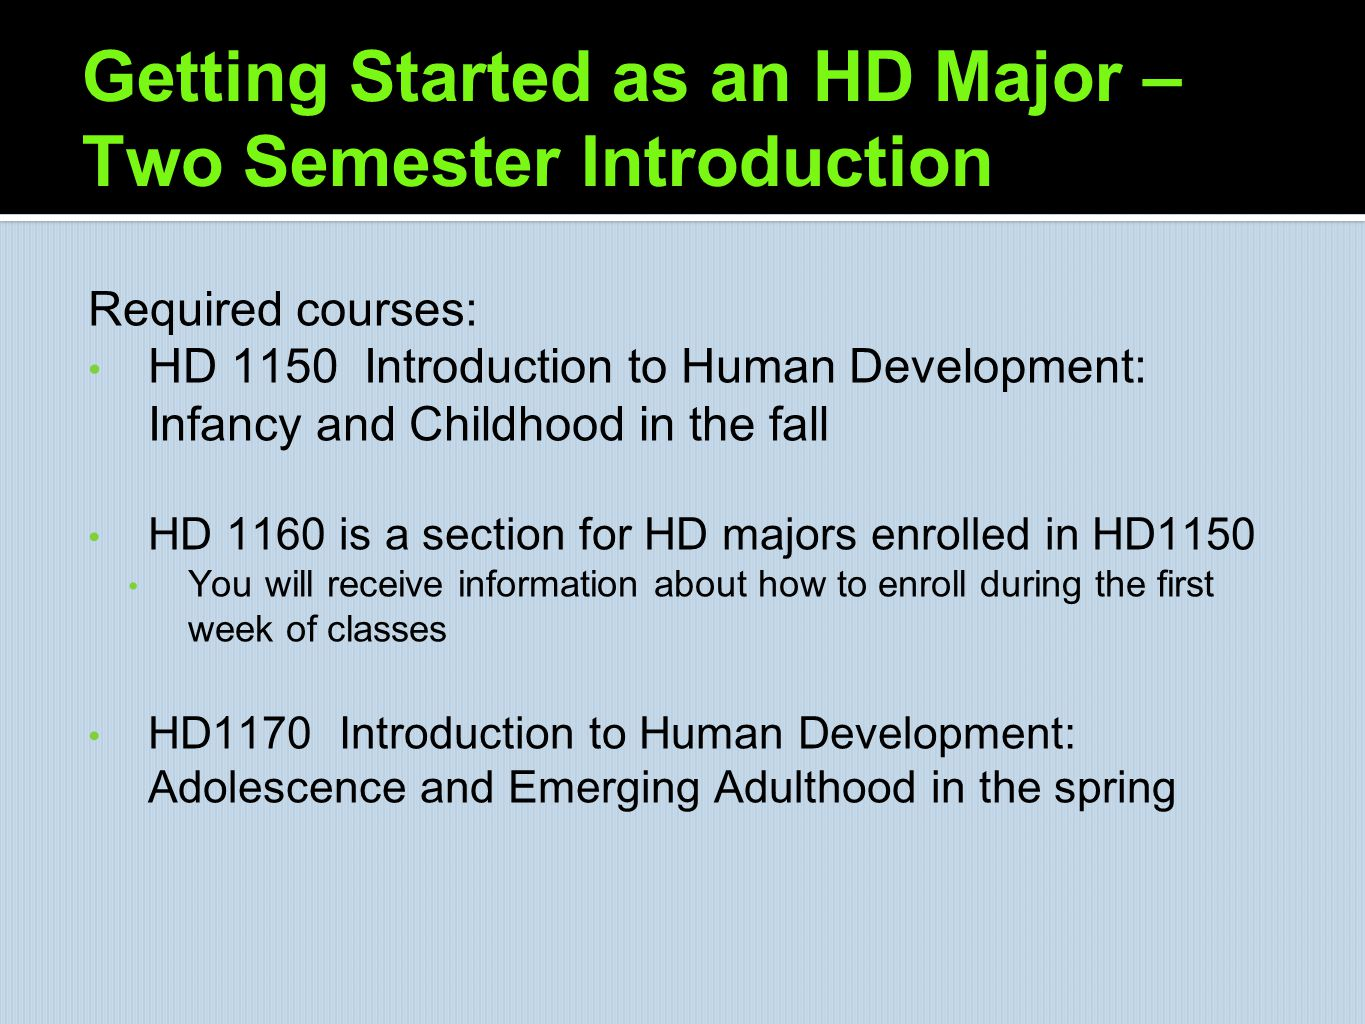 Getting Started as an HD Major – Two Semester Introduction